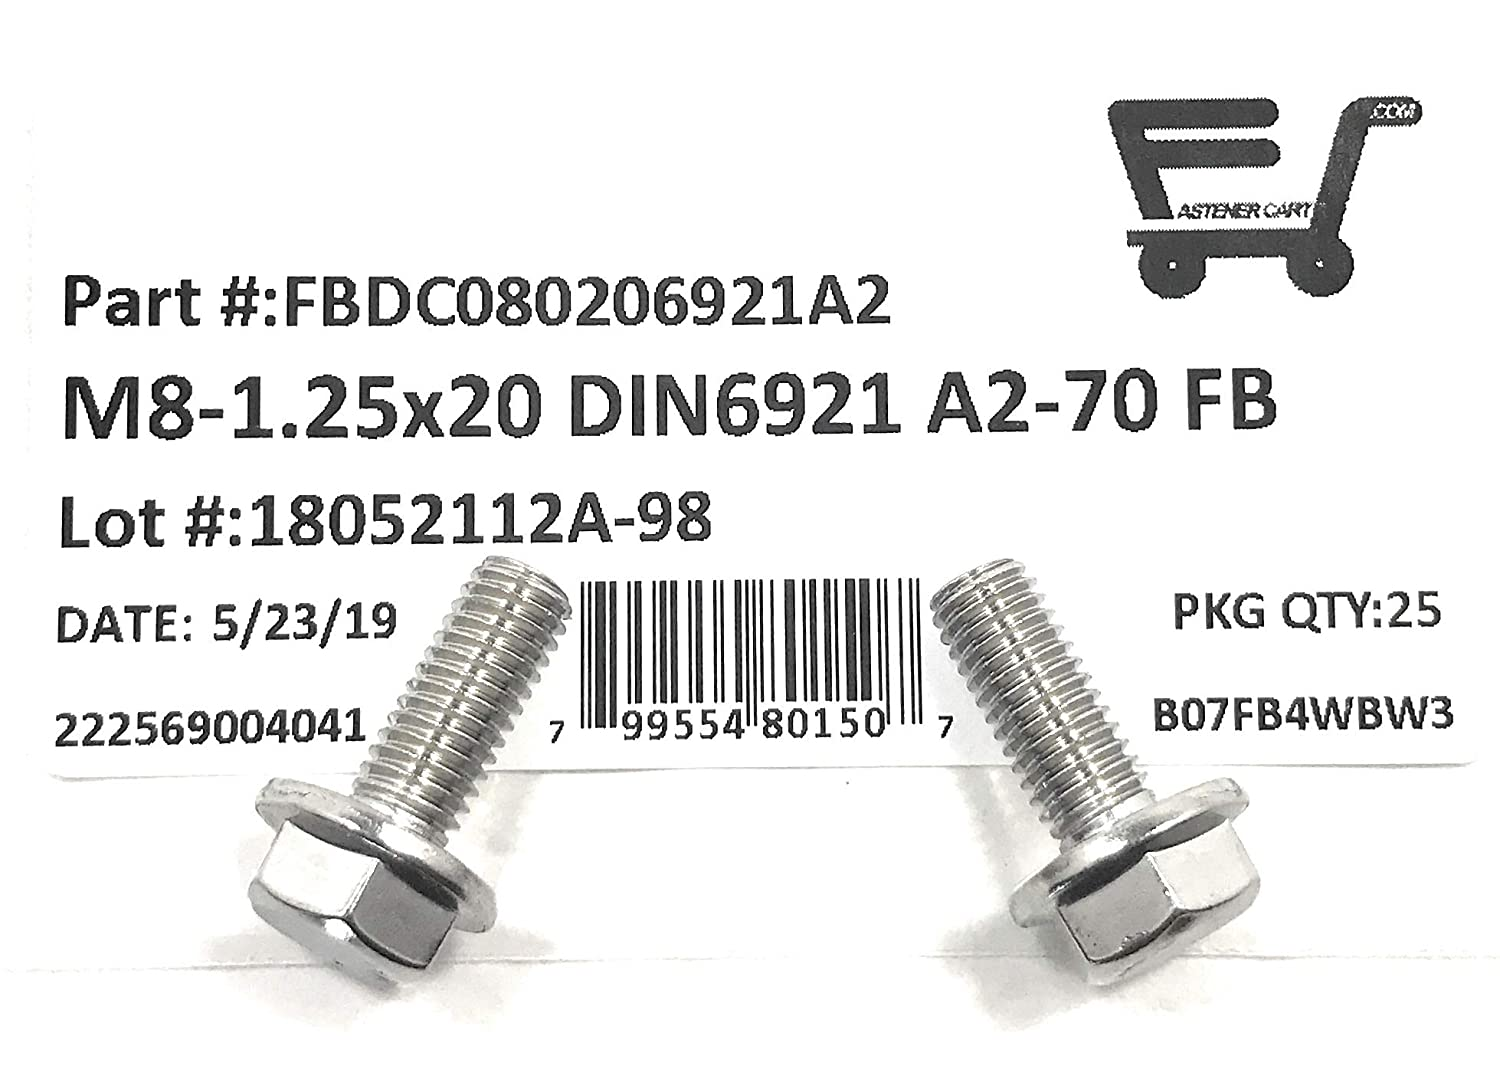 25 Pieces M8-1.25 x 20 Stainless Steel Flange Bolt DIN 6921 A2 Stainless Steel M8x20